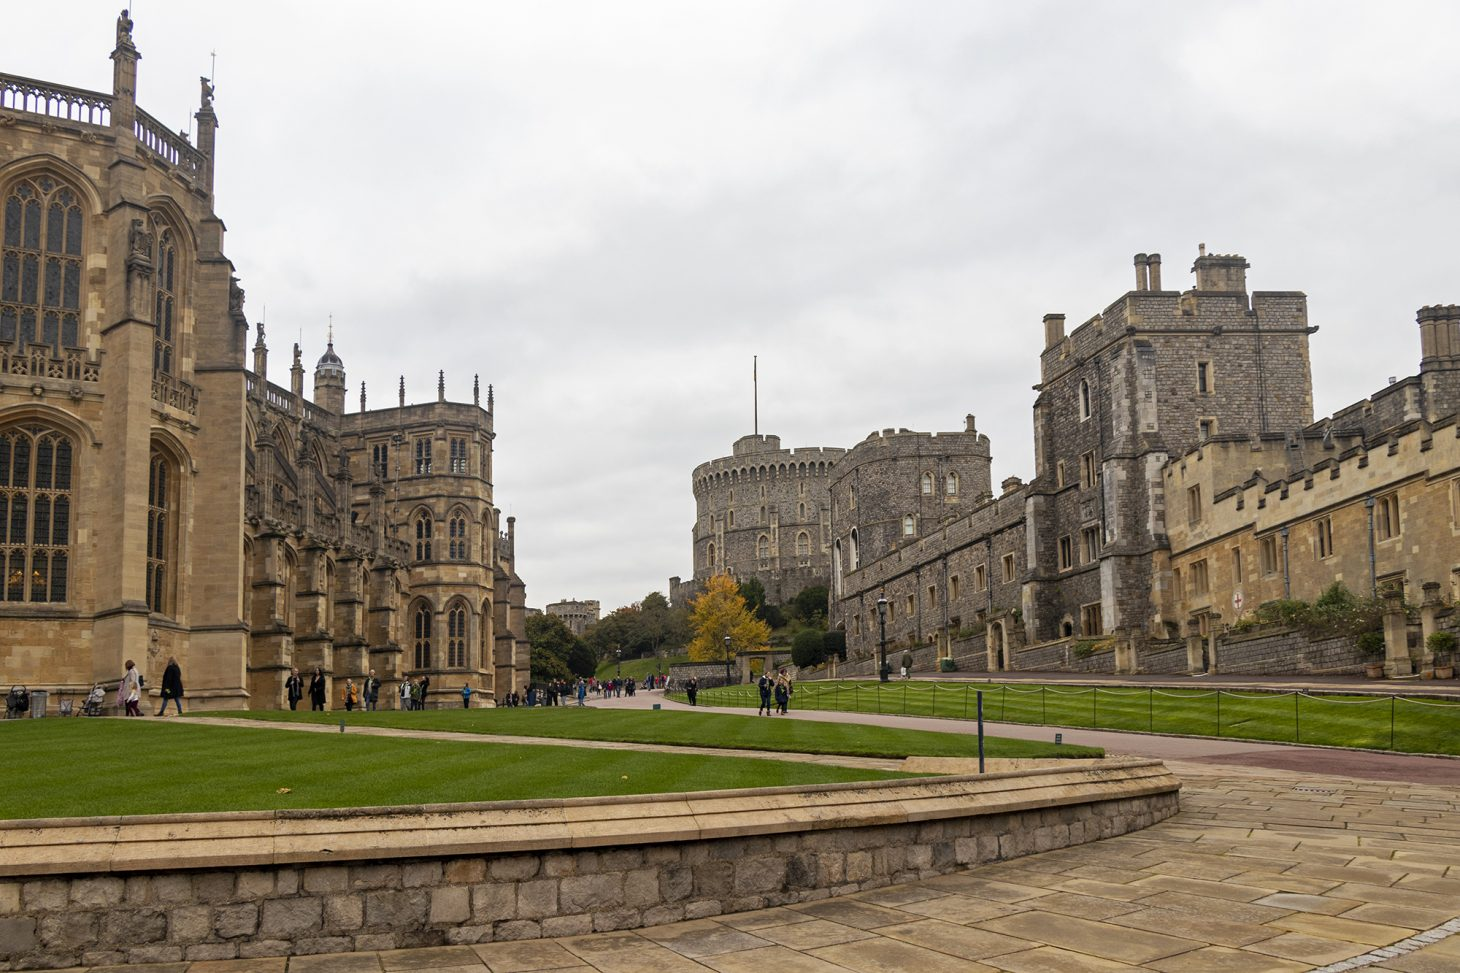 St George's Chapel and Windsor Castle Lower Ward